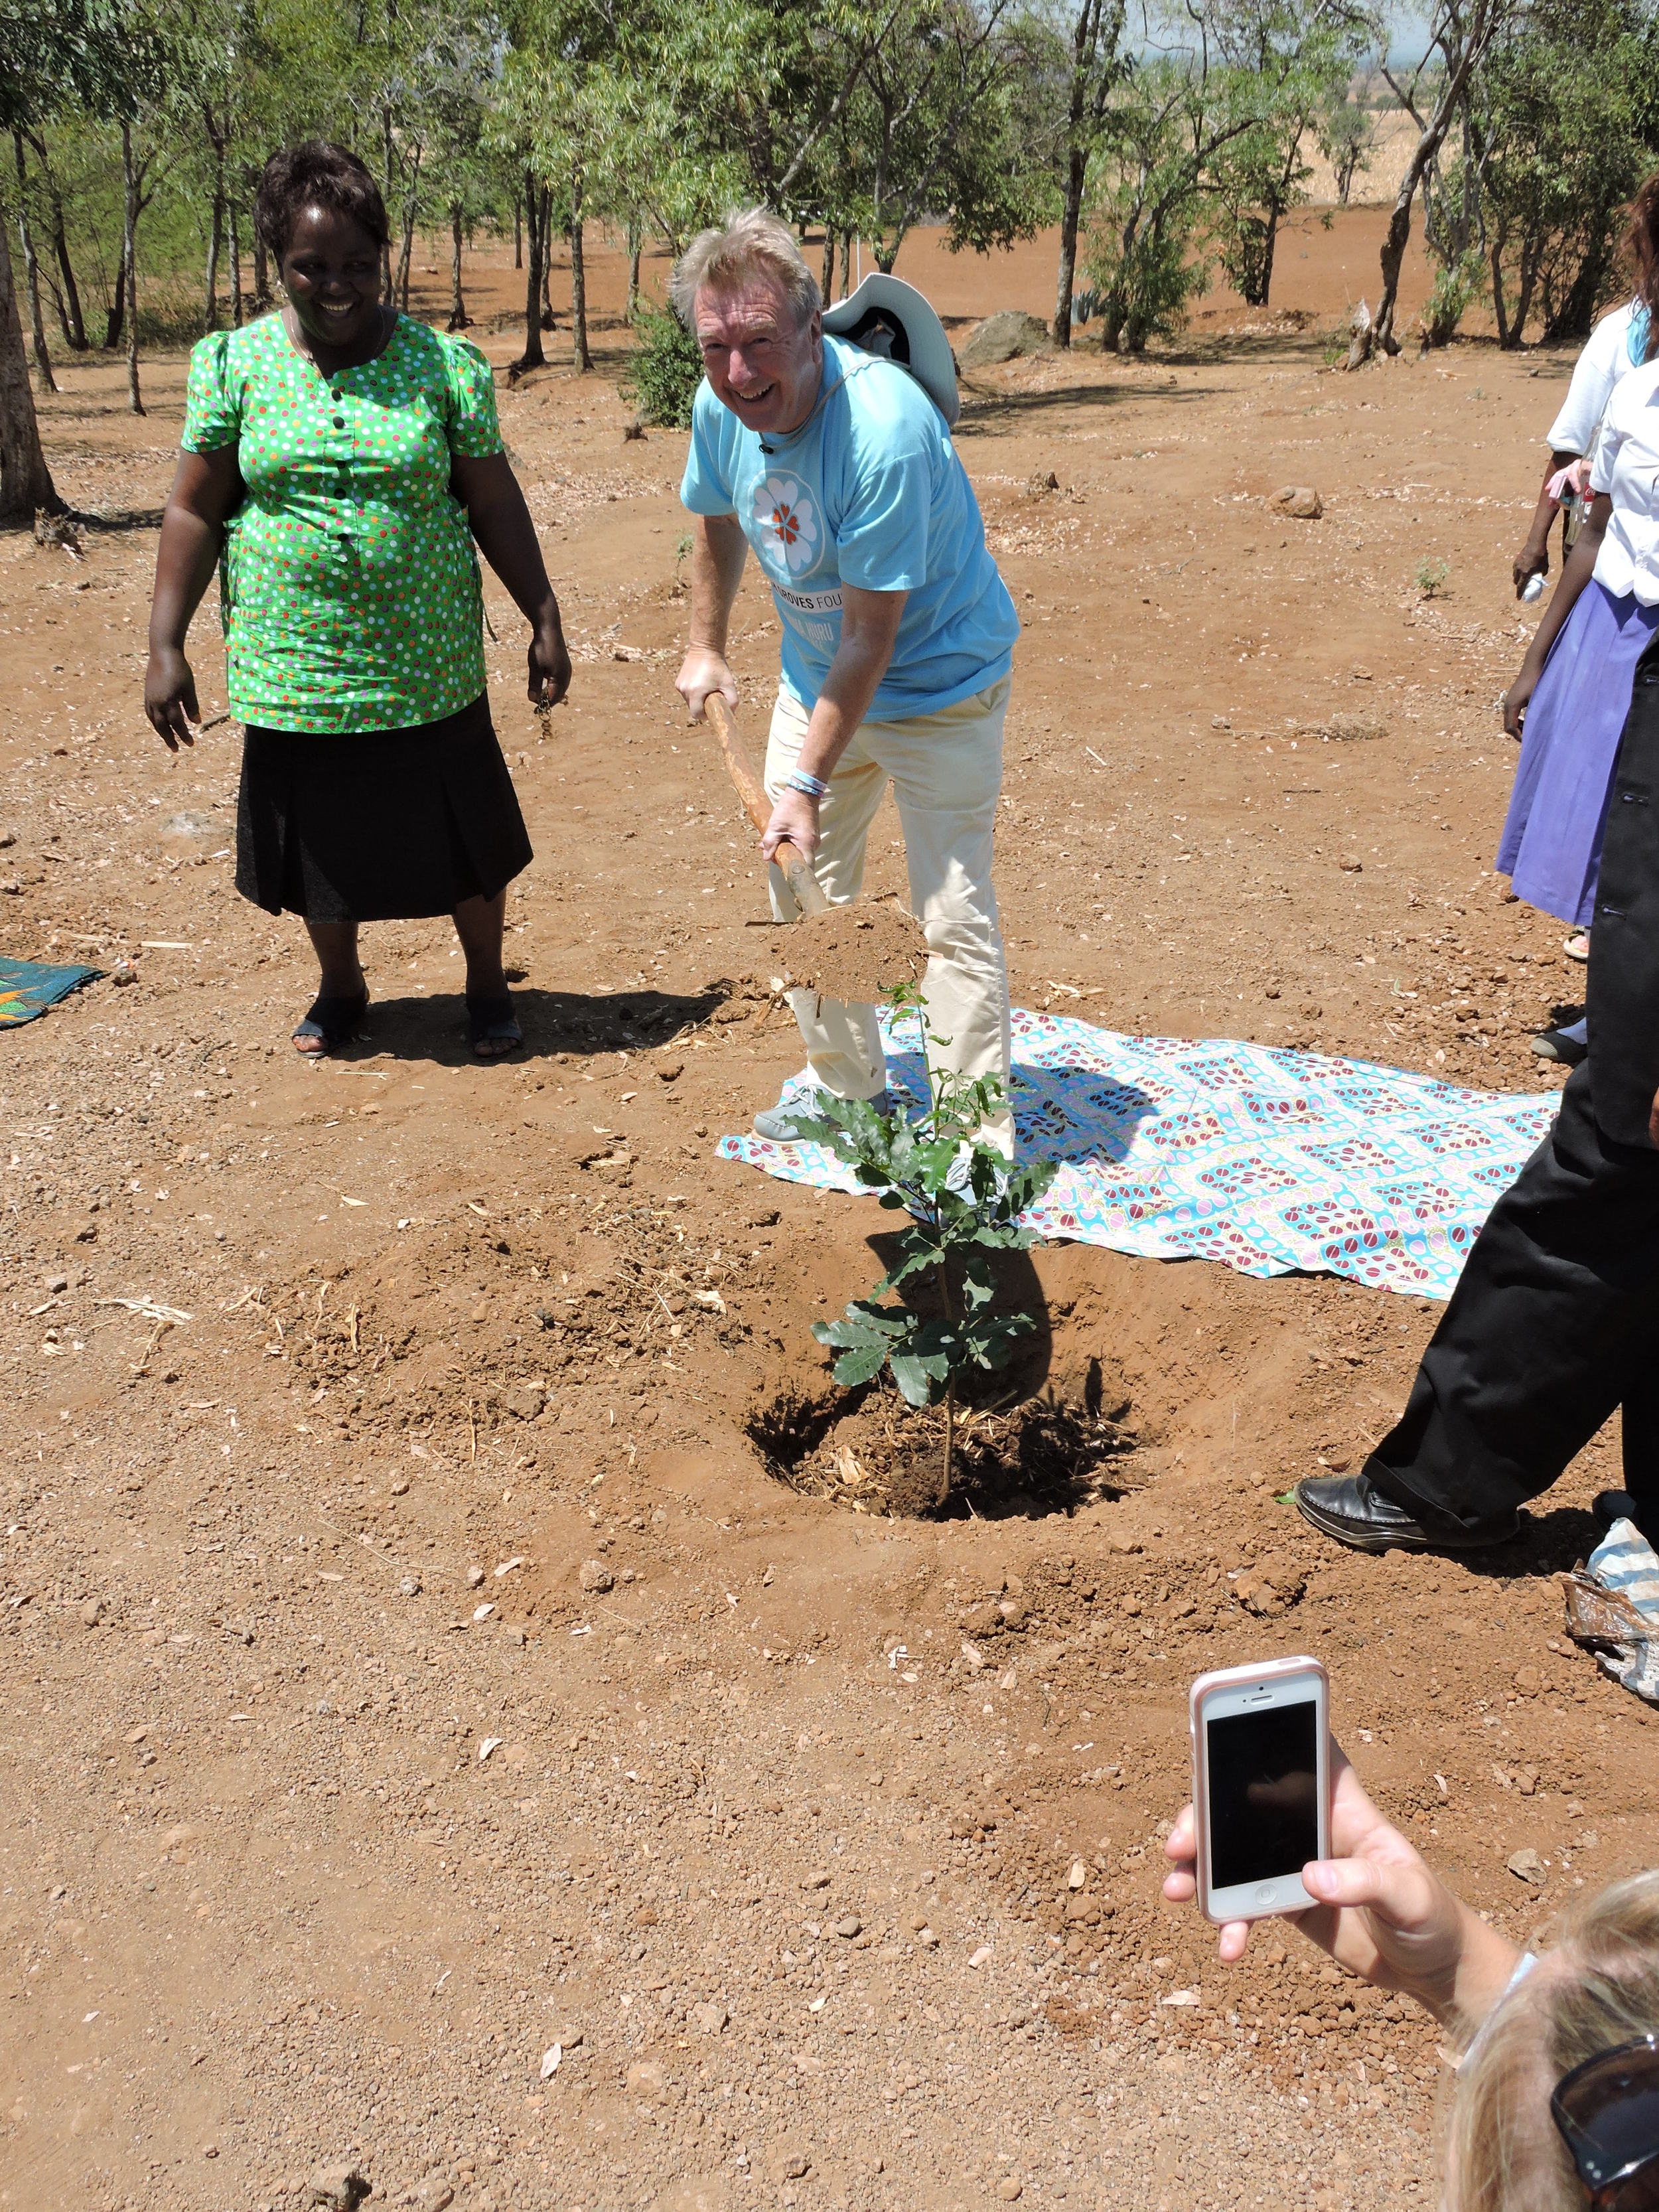 Ceremonial planting of a tree in Sarah's memory by Sarah's father, Vic